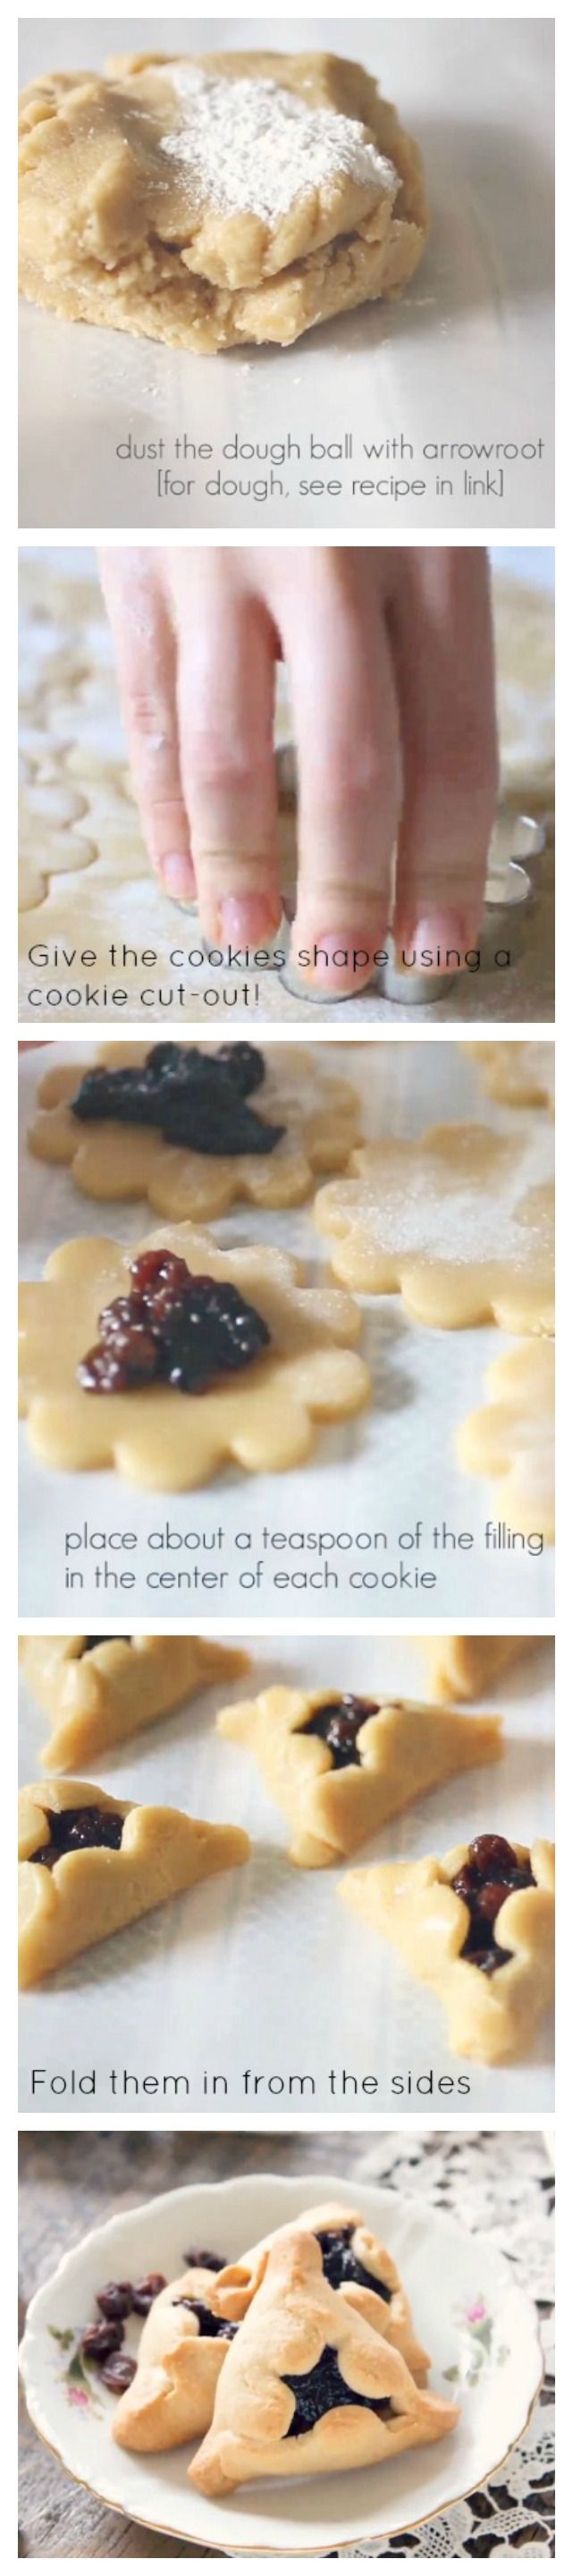 These tasty little Hamantaschen Cookies are a classic treat and are perfect for paleo & gluten free diet followers!